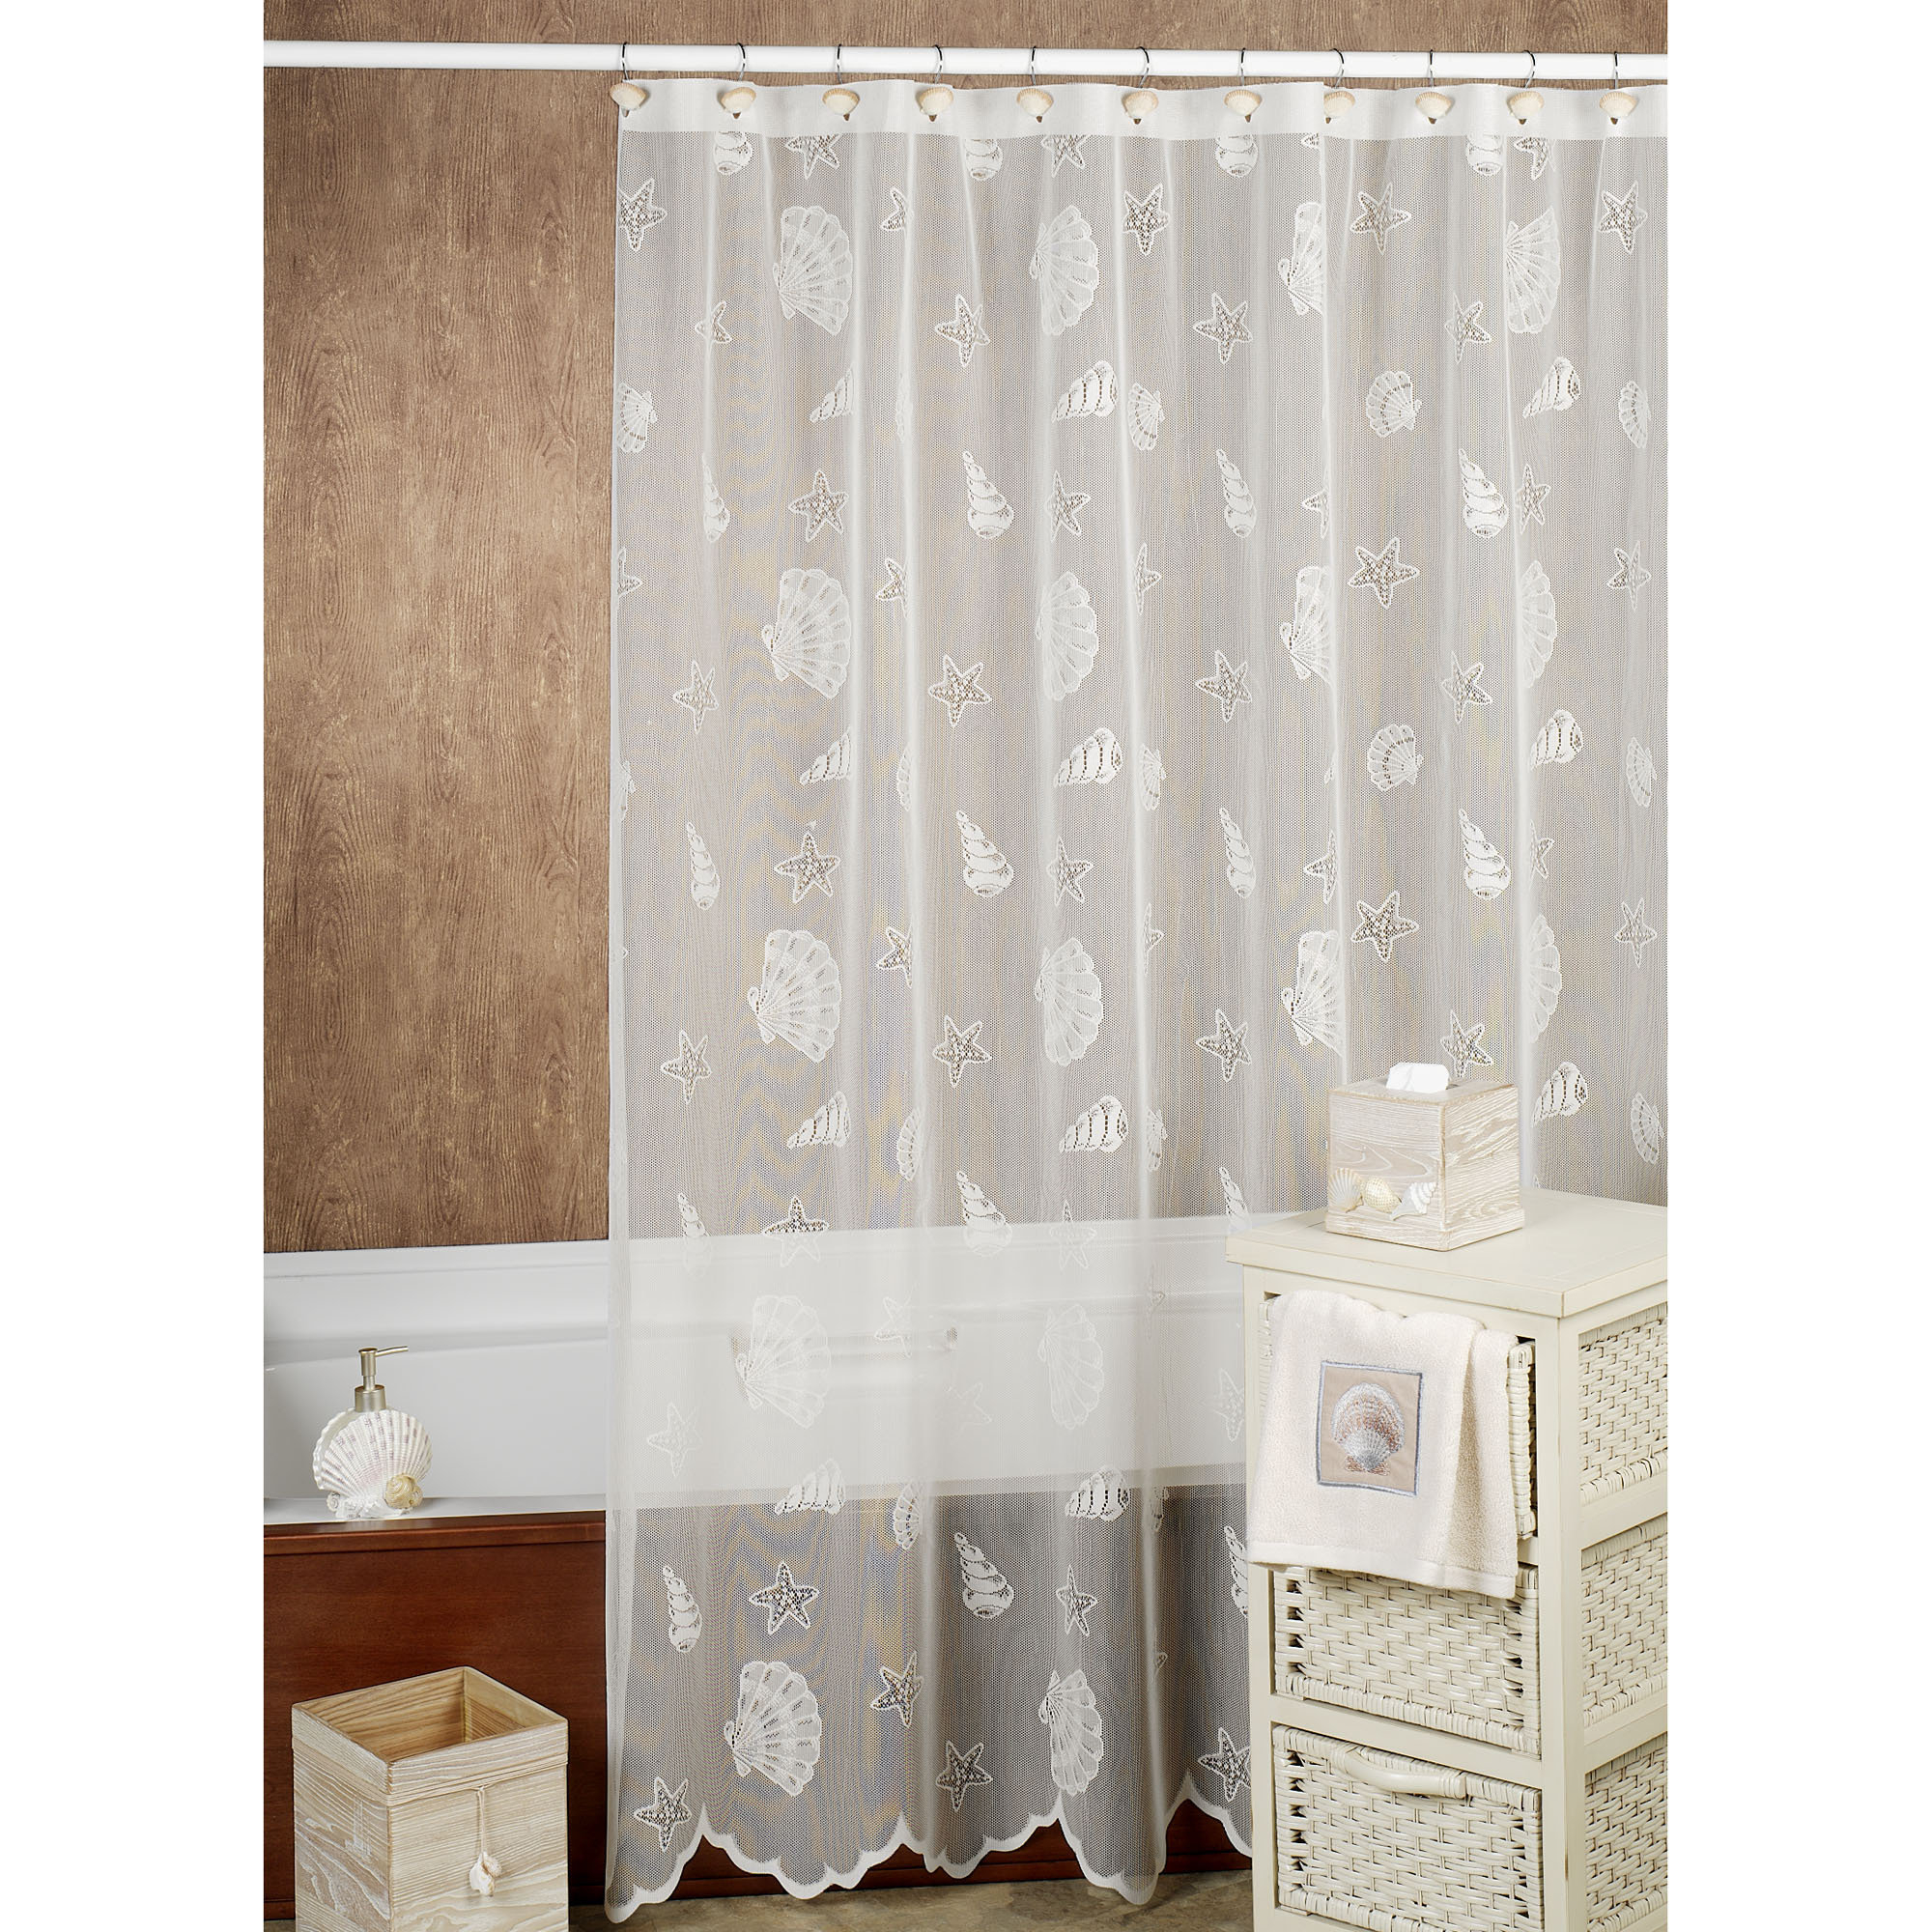 Charmant Incredible Brown To White Ruffled Extra Long Shower Curtain Added With  Sizing 2000 X 2000